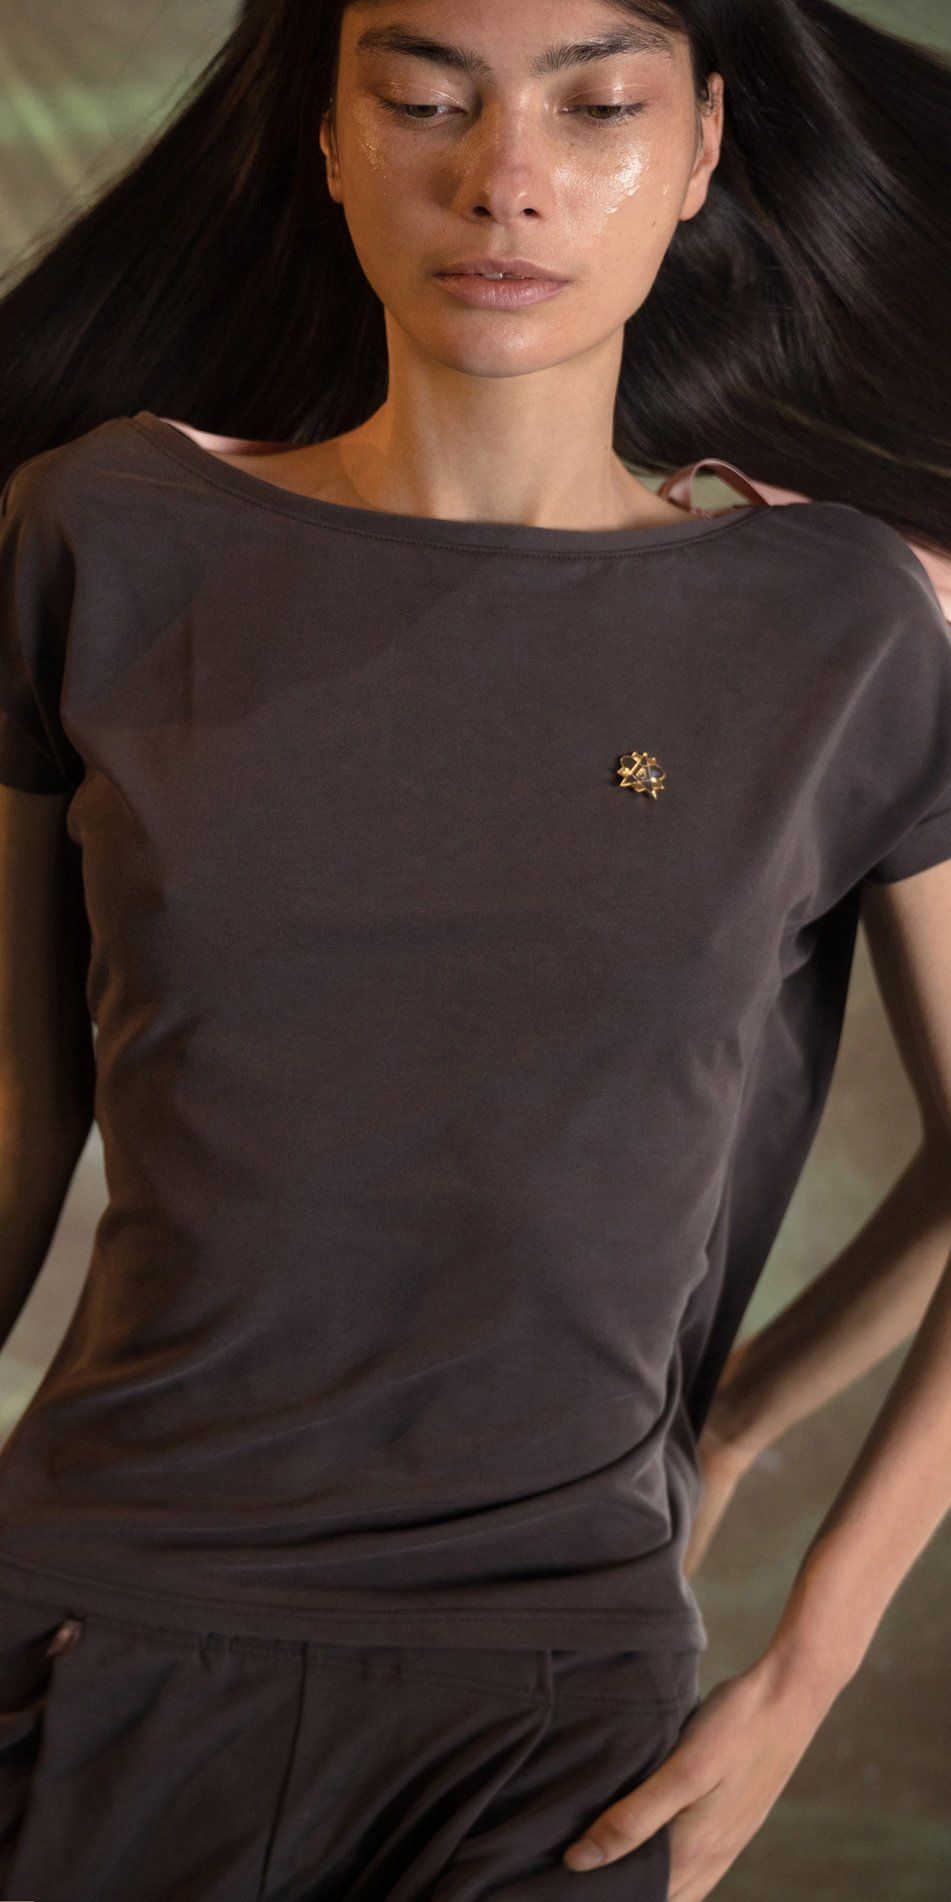 RIBBON BOW chocolate low back t shirt 5